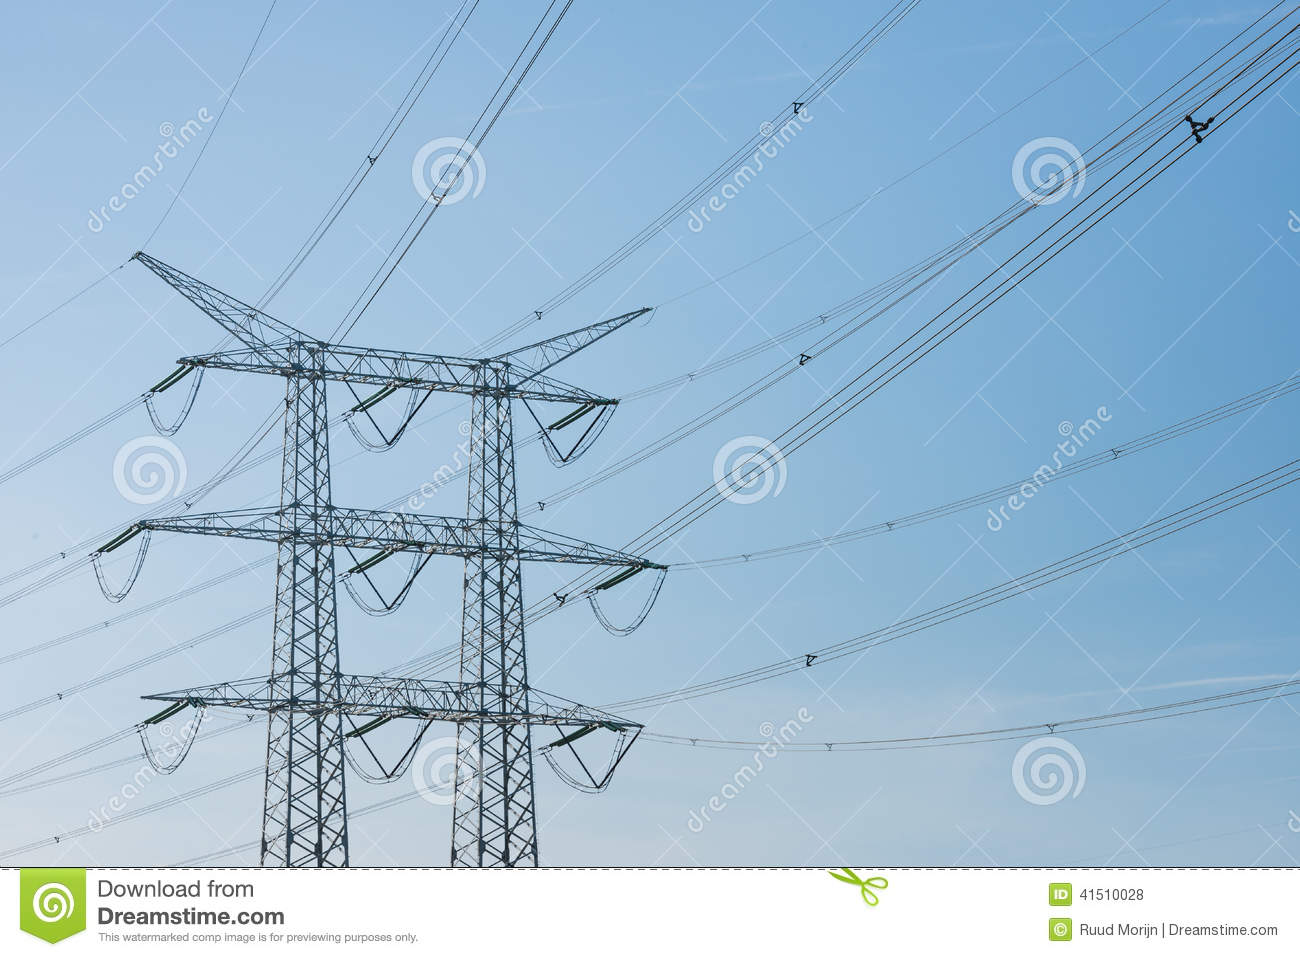 High Voltage Transmission Lines : High voltage power transmission lines and pylon stock